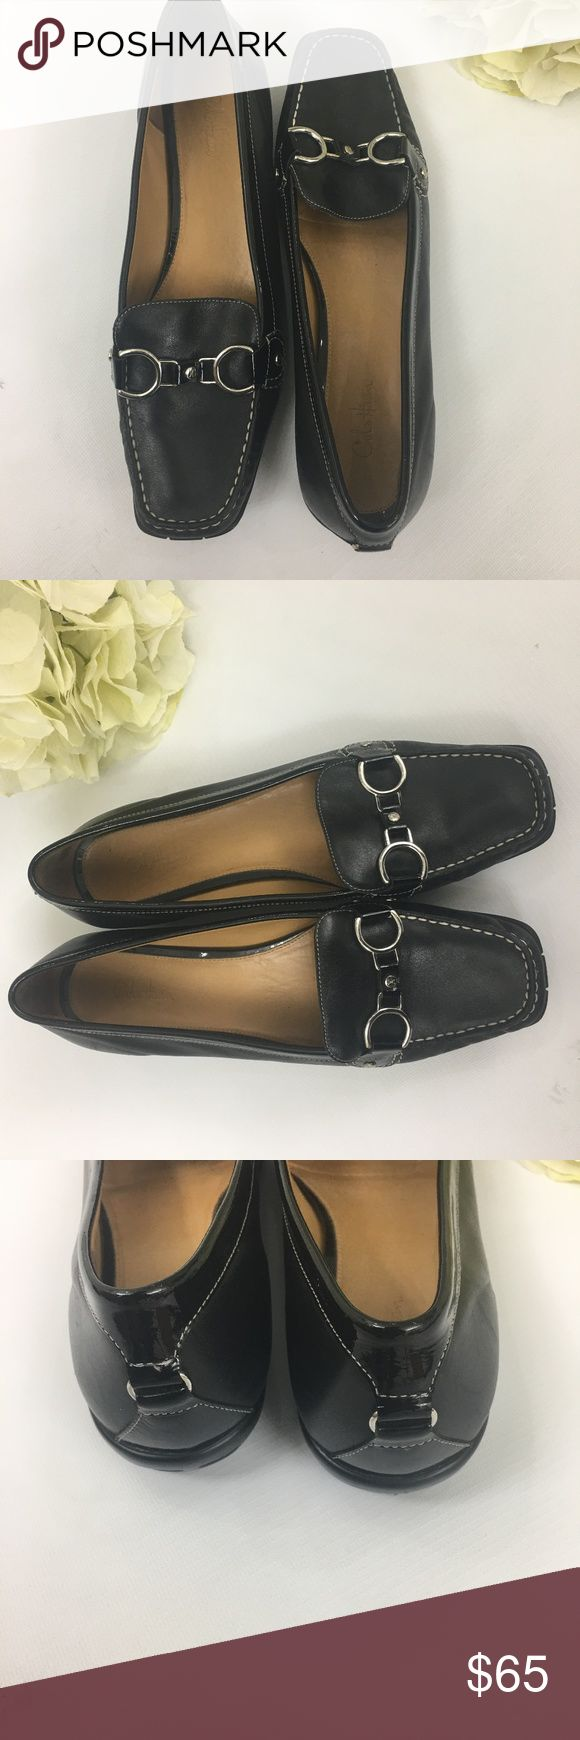 EUC Cole Haan black loafers size 10 B These beautiful Cole Haan loafers are in excellent condition with minor wear Cole Haan Shoes Flats & Loafers